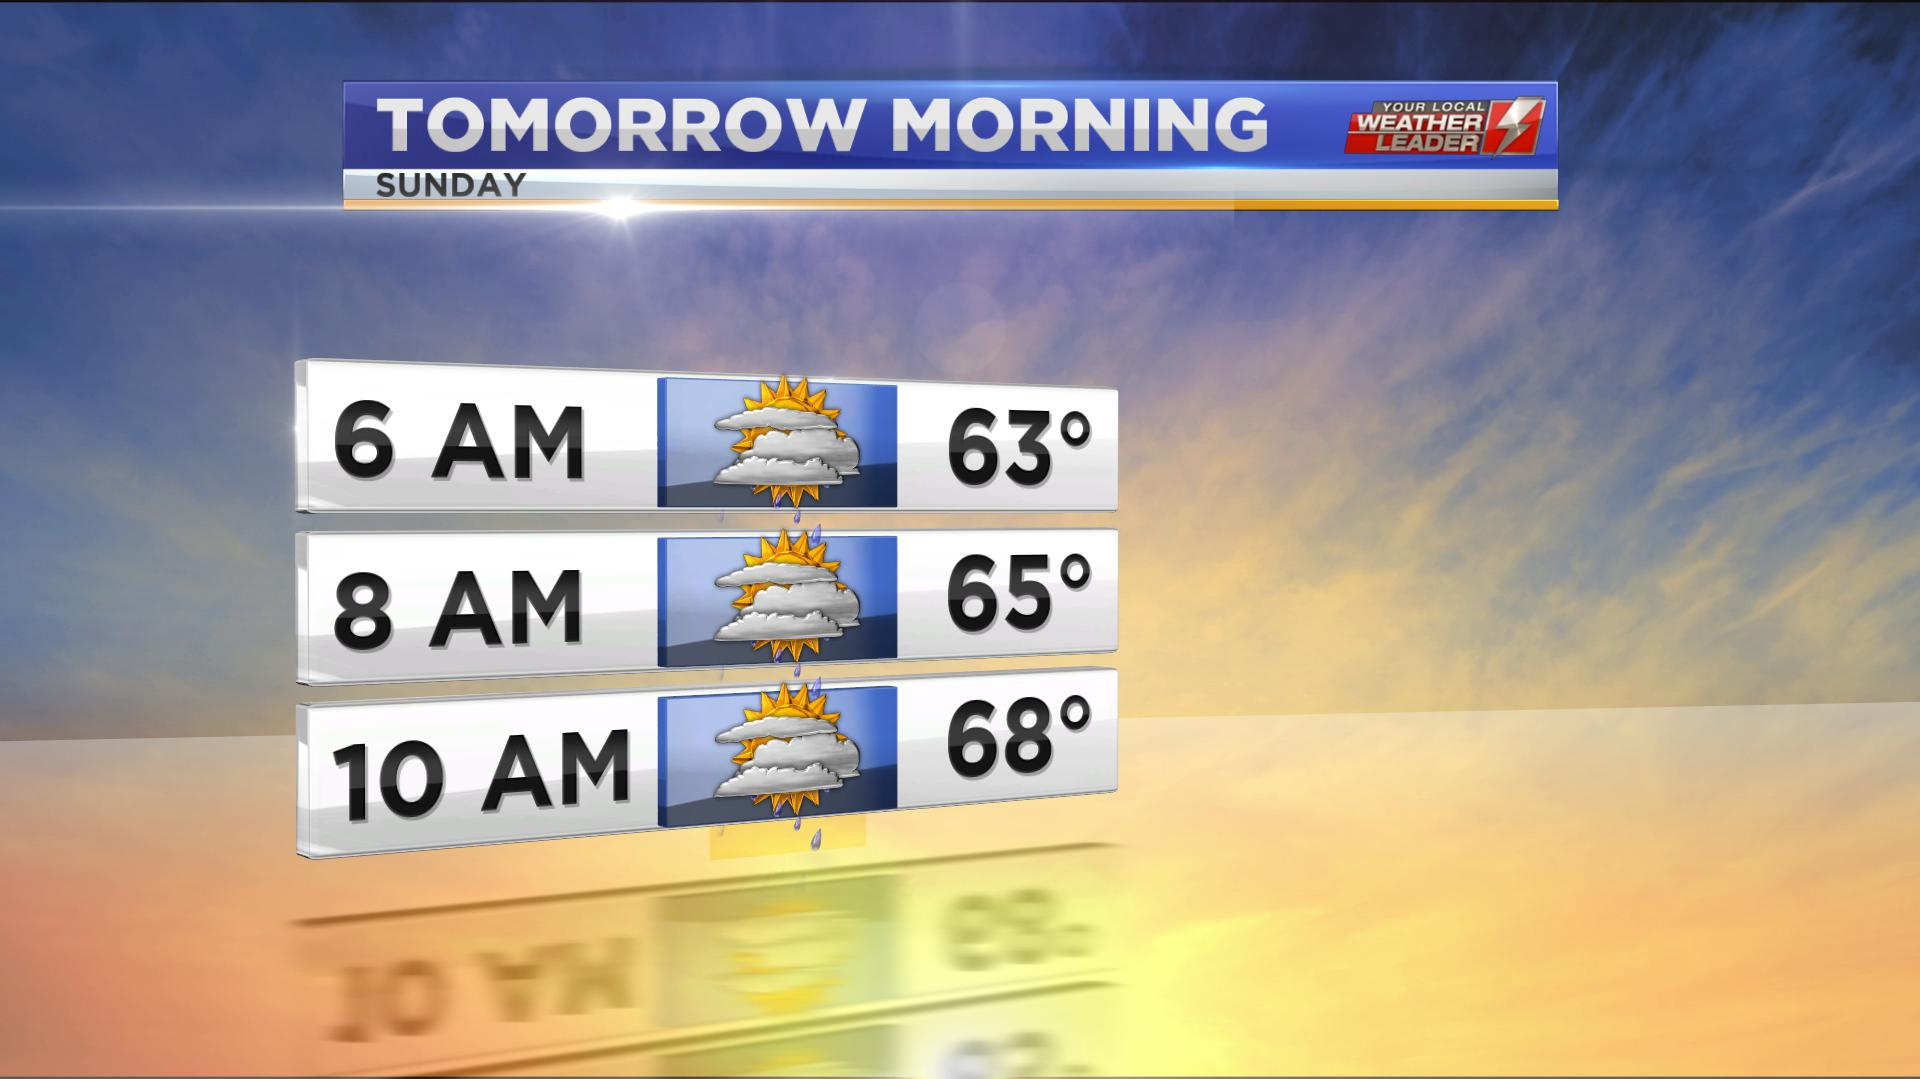 Morning Planner for Sunday 09 June 2019